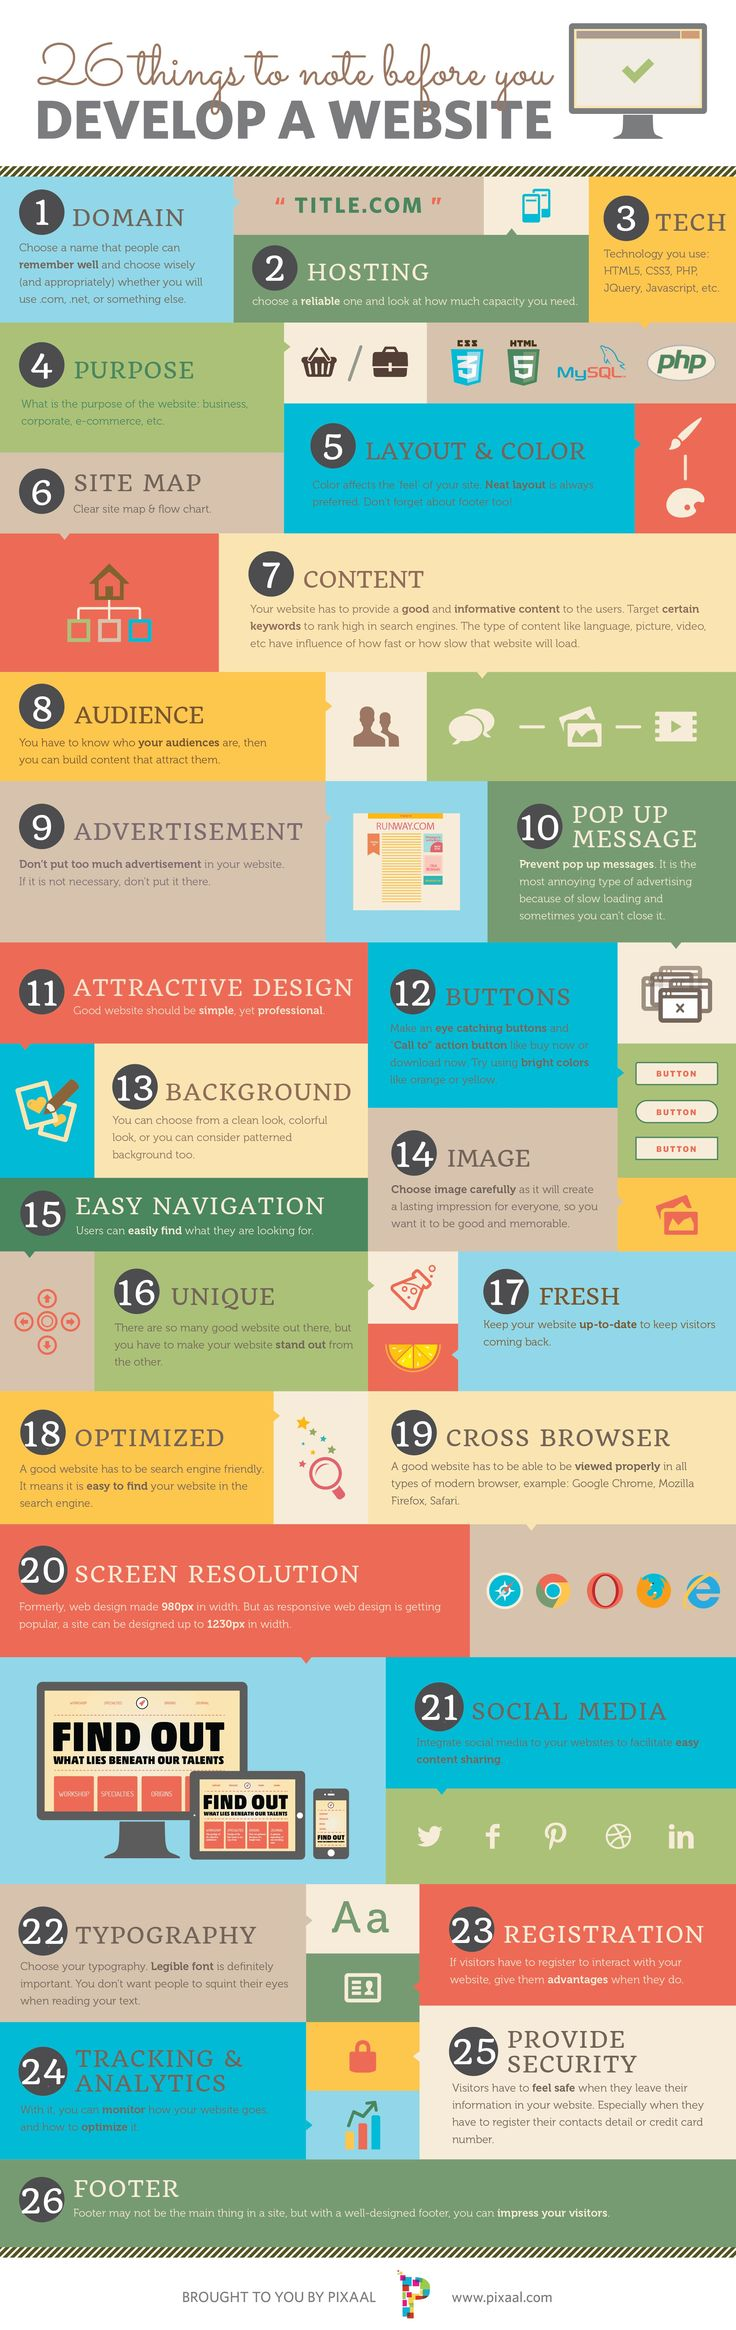 26 Things to Note Before You Develop a Website                                                                                                                                                     More